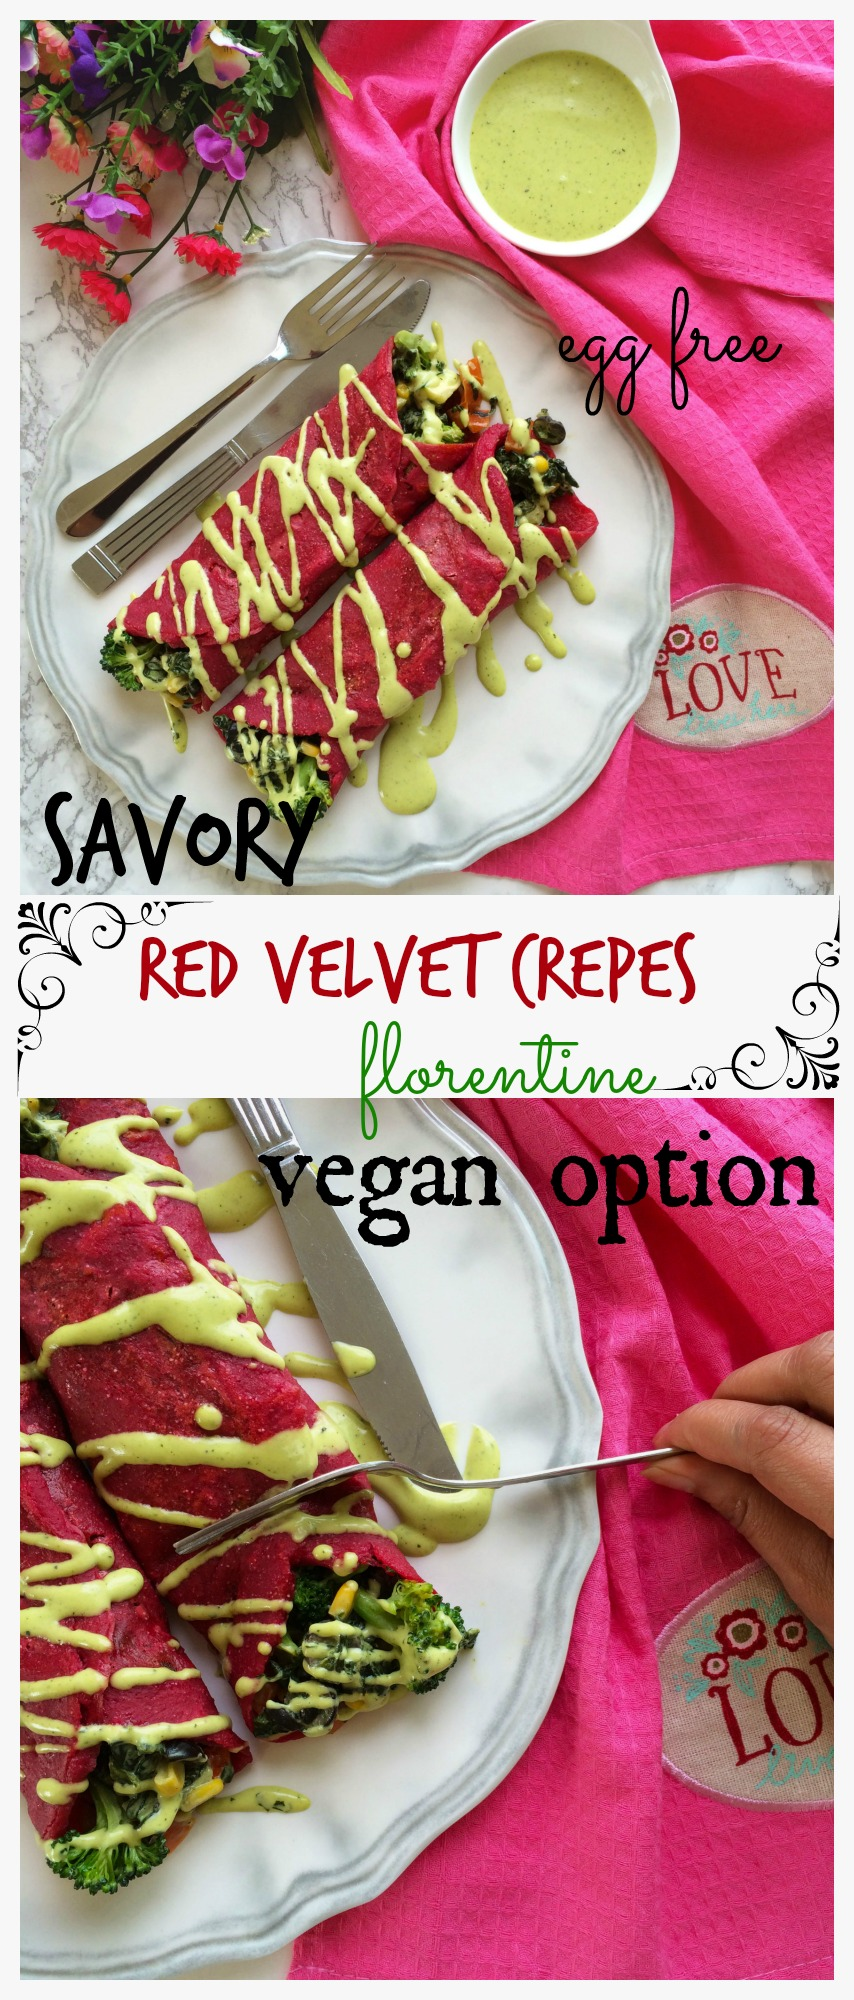 red velvet savory crepes florentine (eggless)